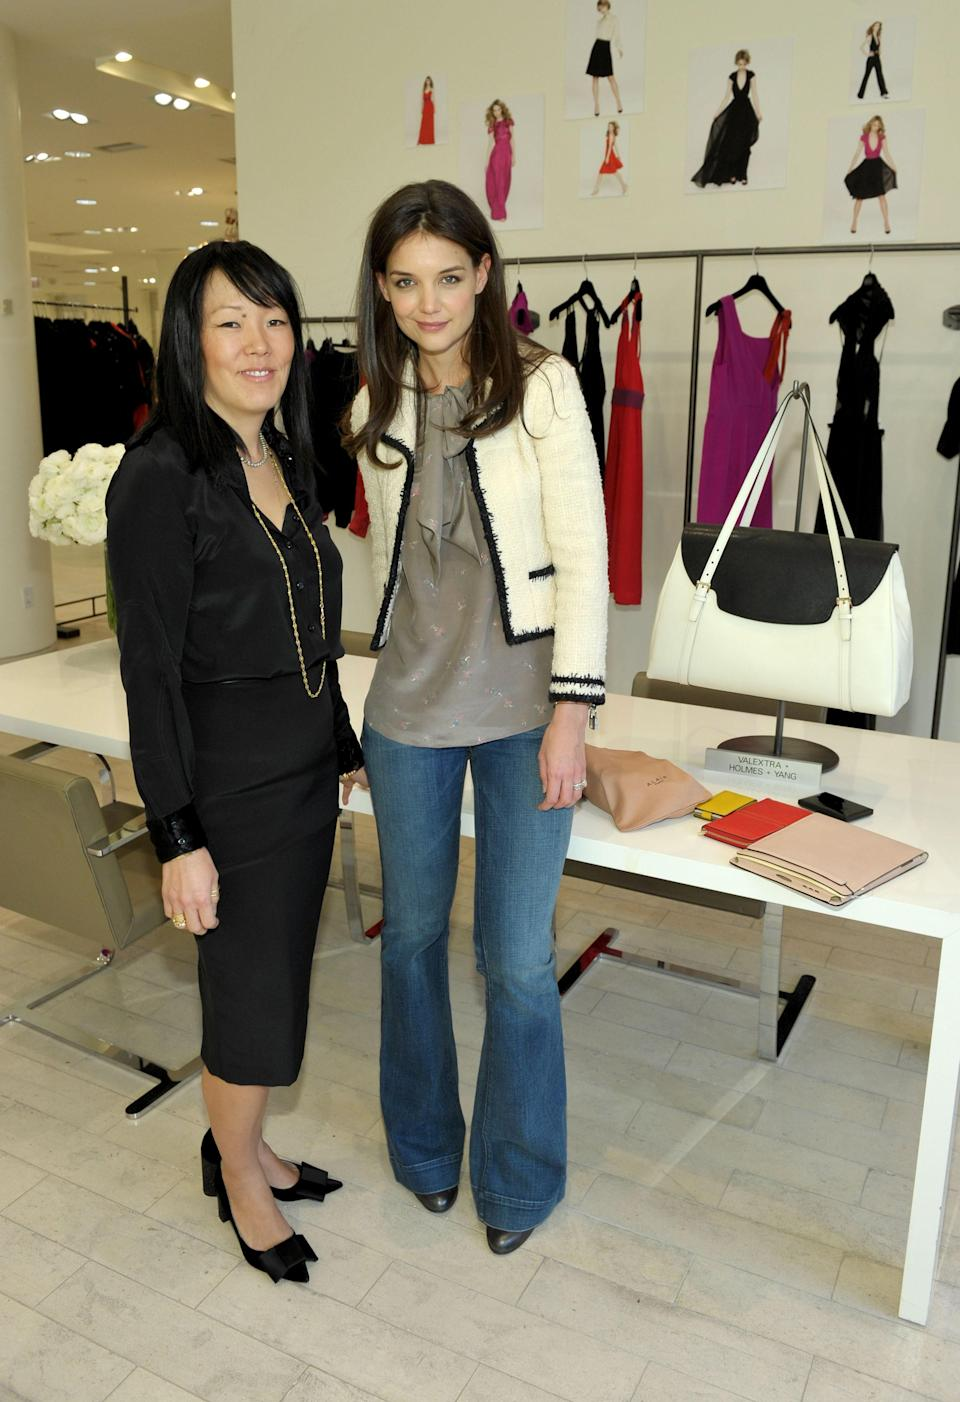 In 2009, Katie Holmes launched a clothing line with her then-stylist Jeanne Yang, titled Holmes & Yang. It landed in Barney's New York, and was considered to be a contemporary-luxury collection that included sleek separates and elegant work dresses. It shuttered in 2014.